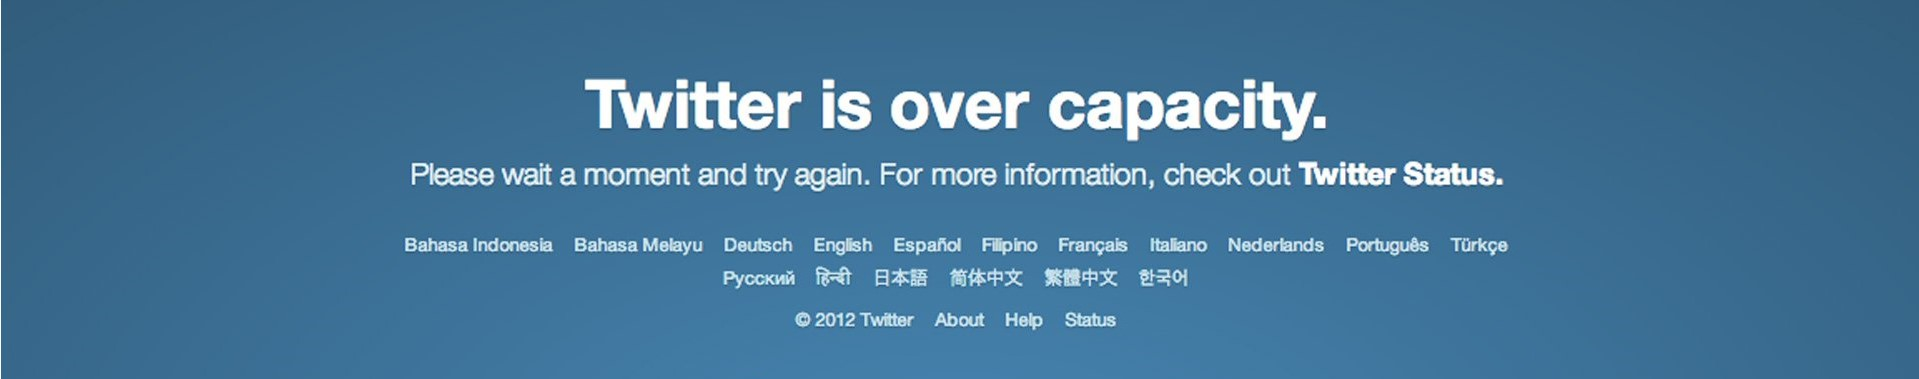 Twitter is over capacity screen